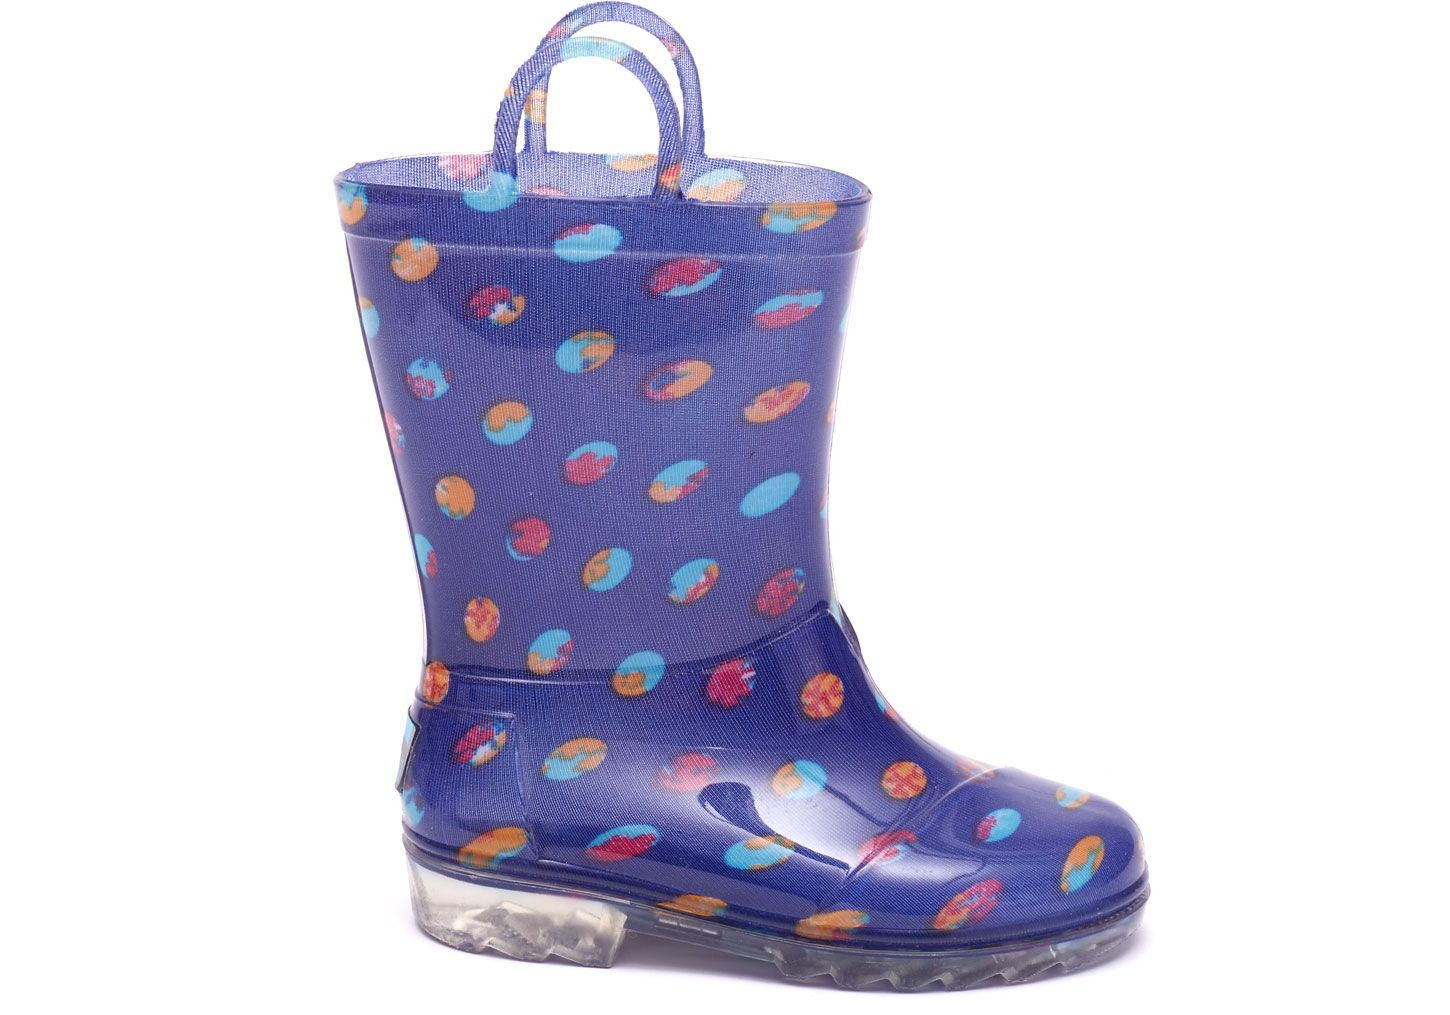 Pin By Michelle Esteem On Toddler Style Tiny Toms Boots Rain Boots